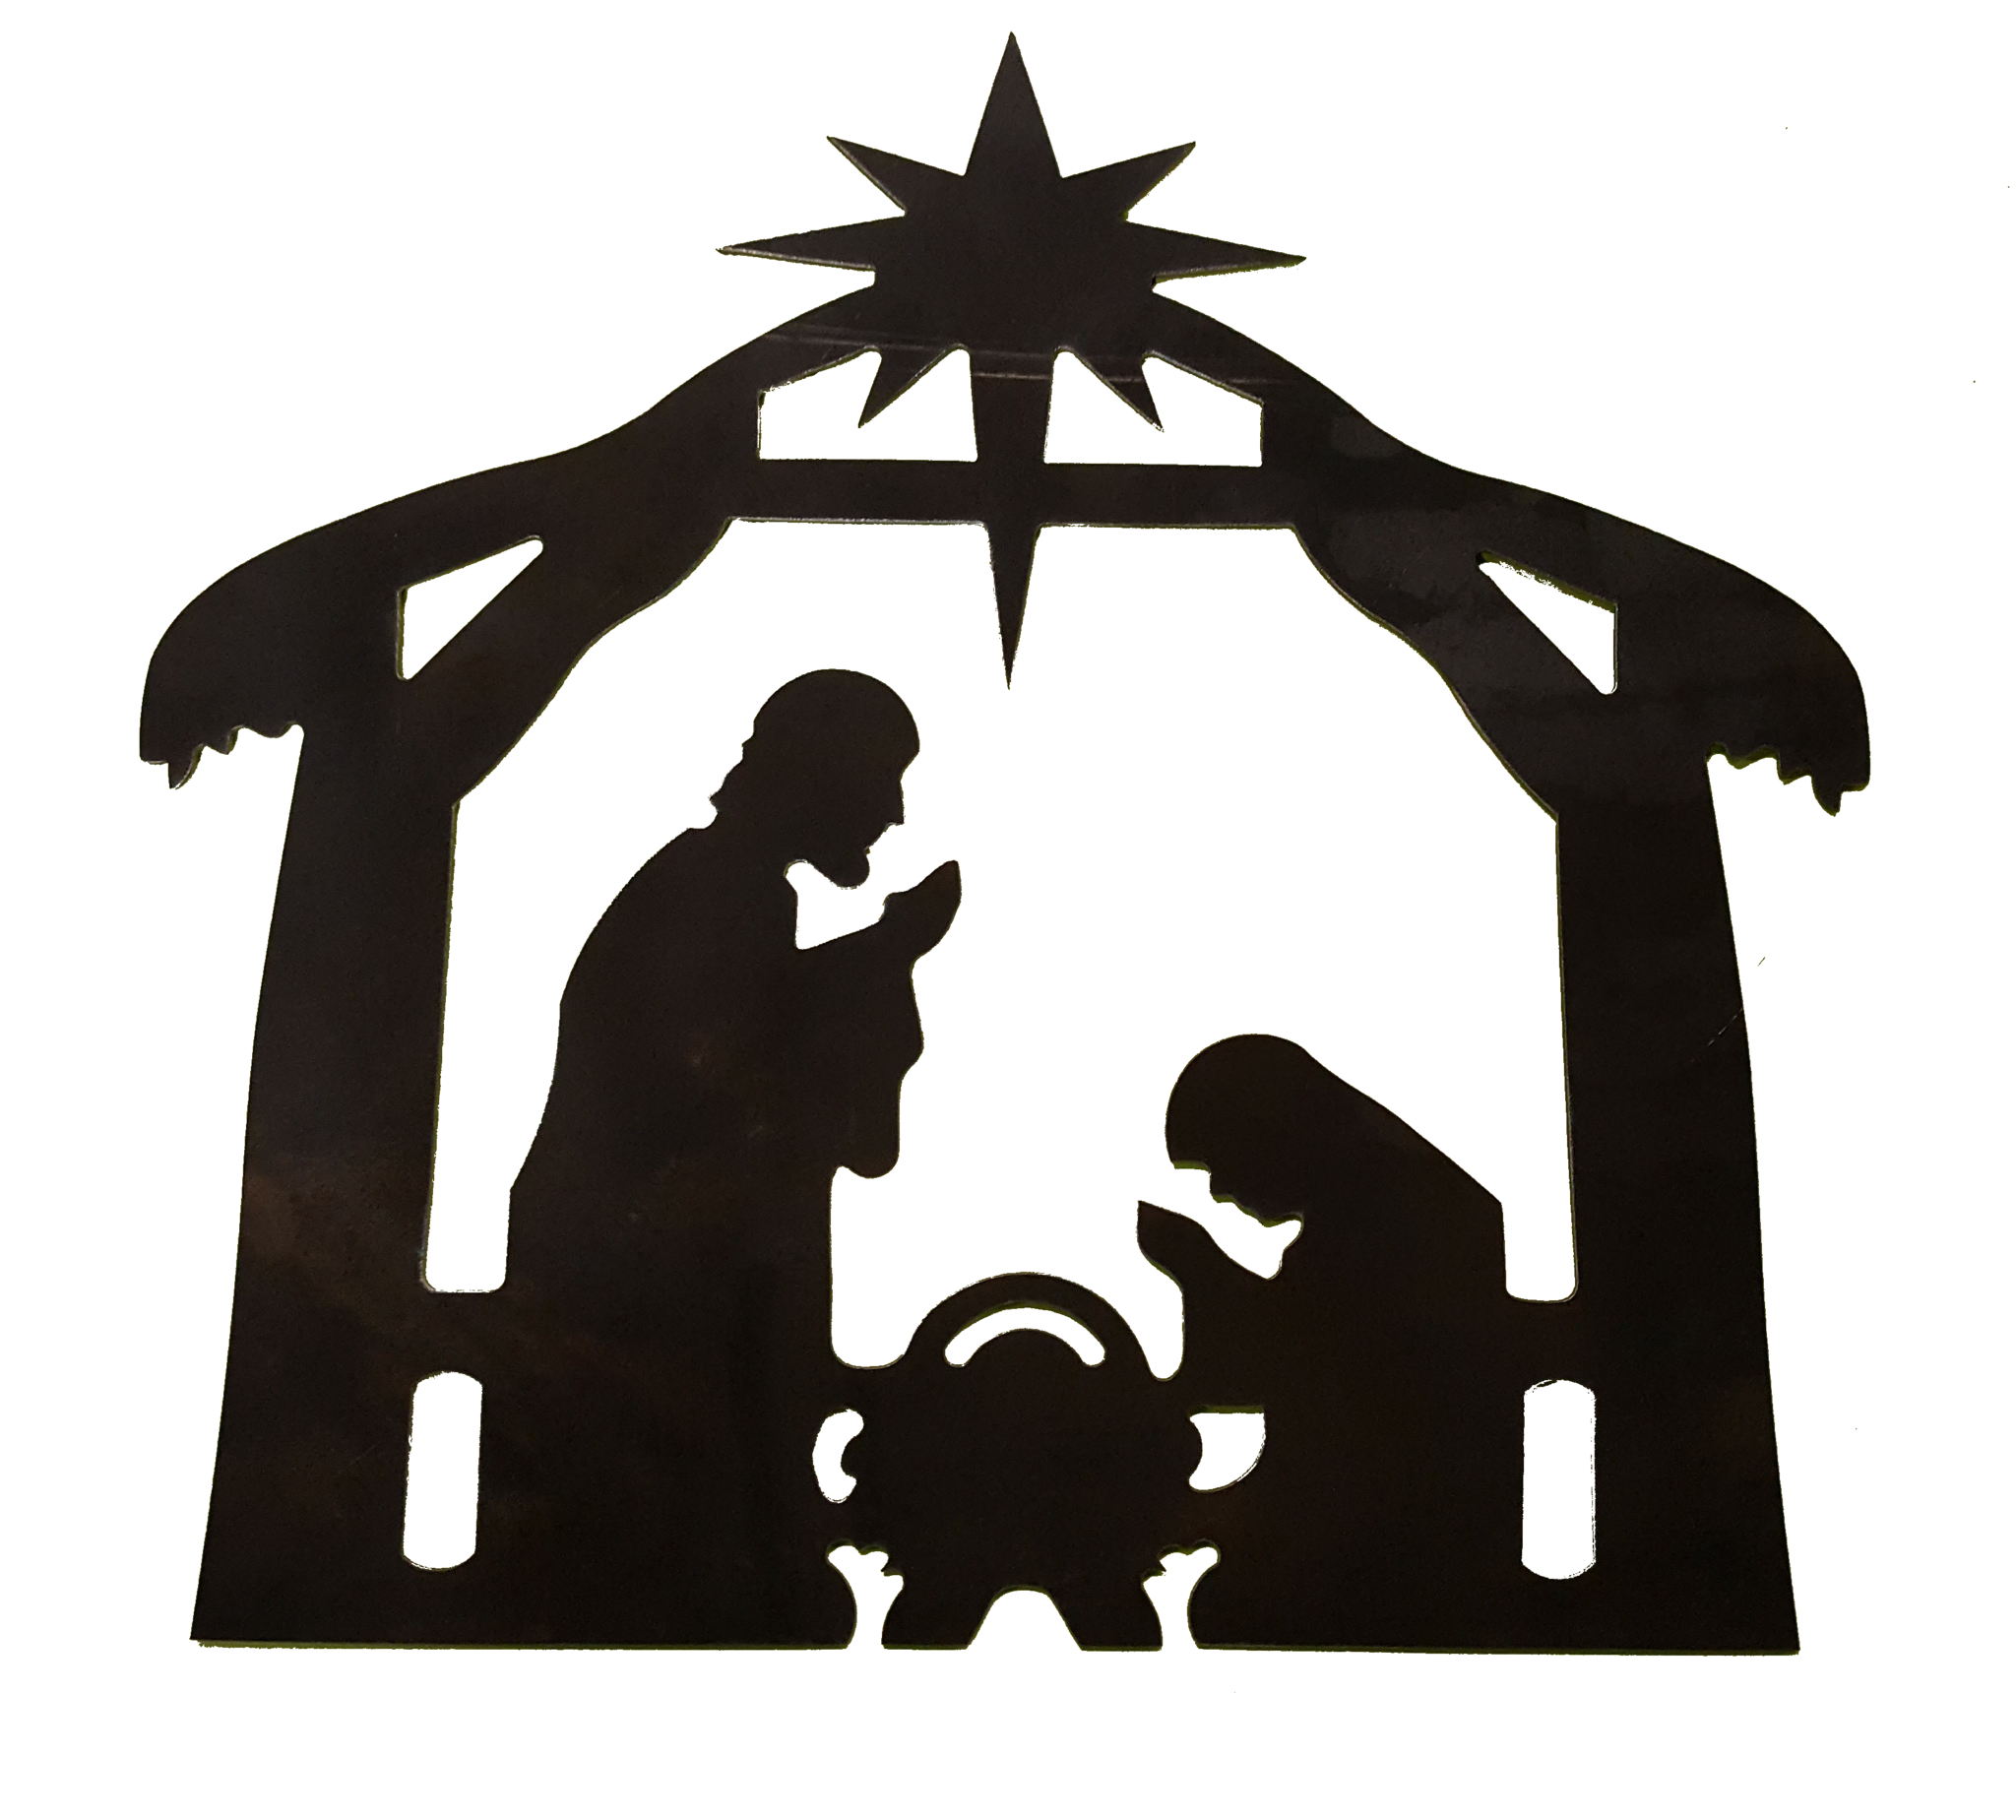 Nativity Scene Clipart Black And White | Free download on ...